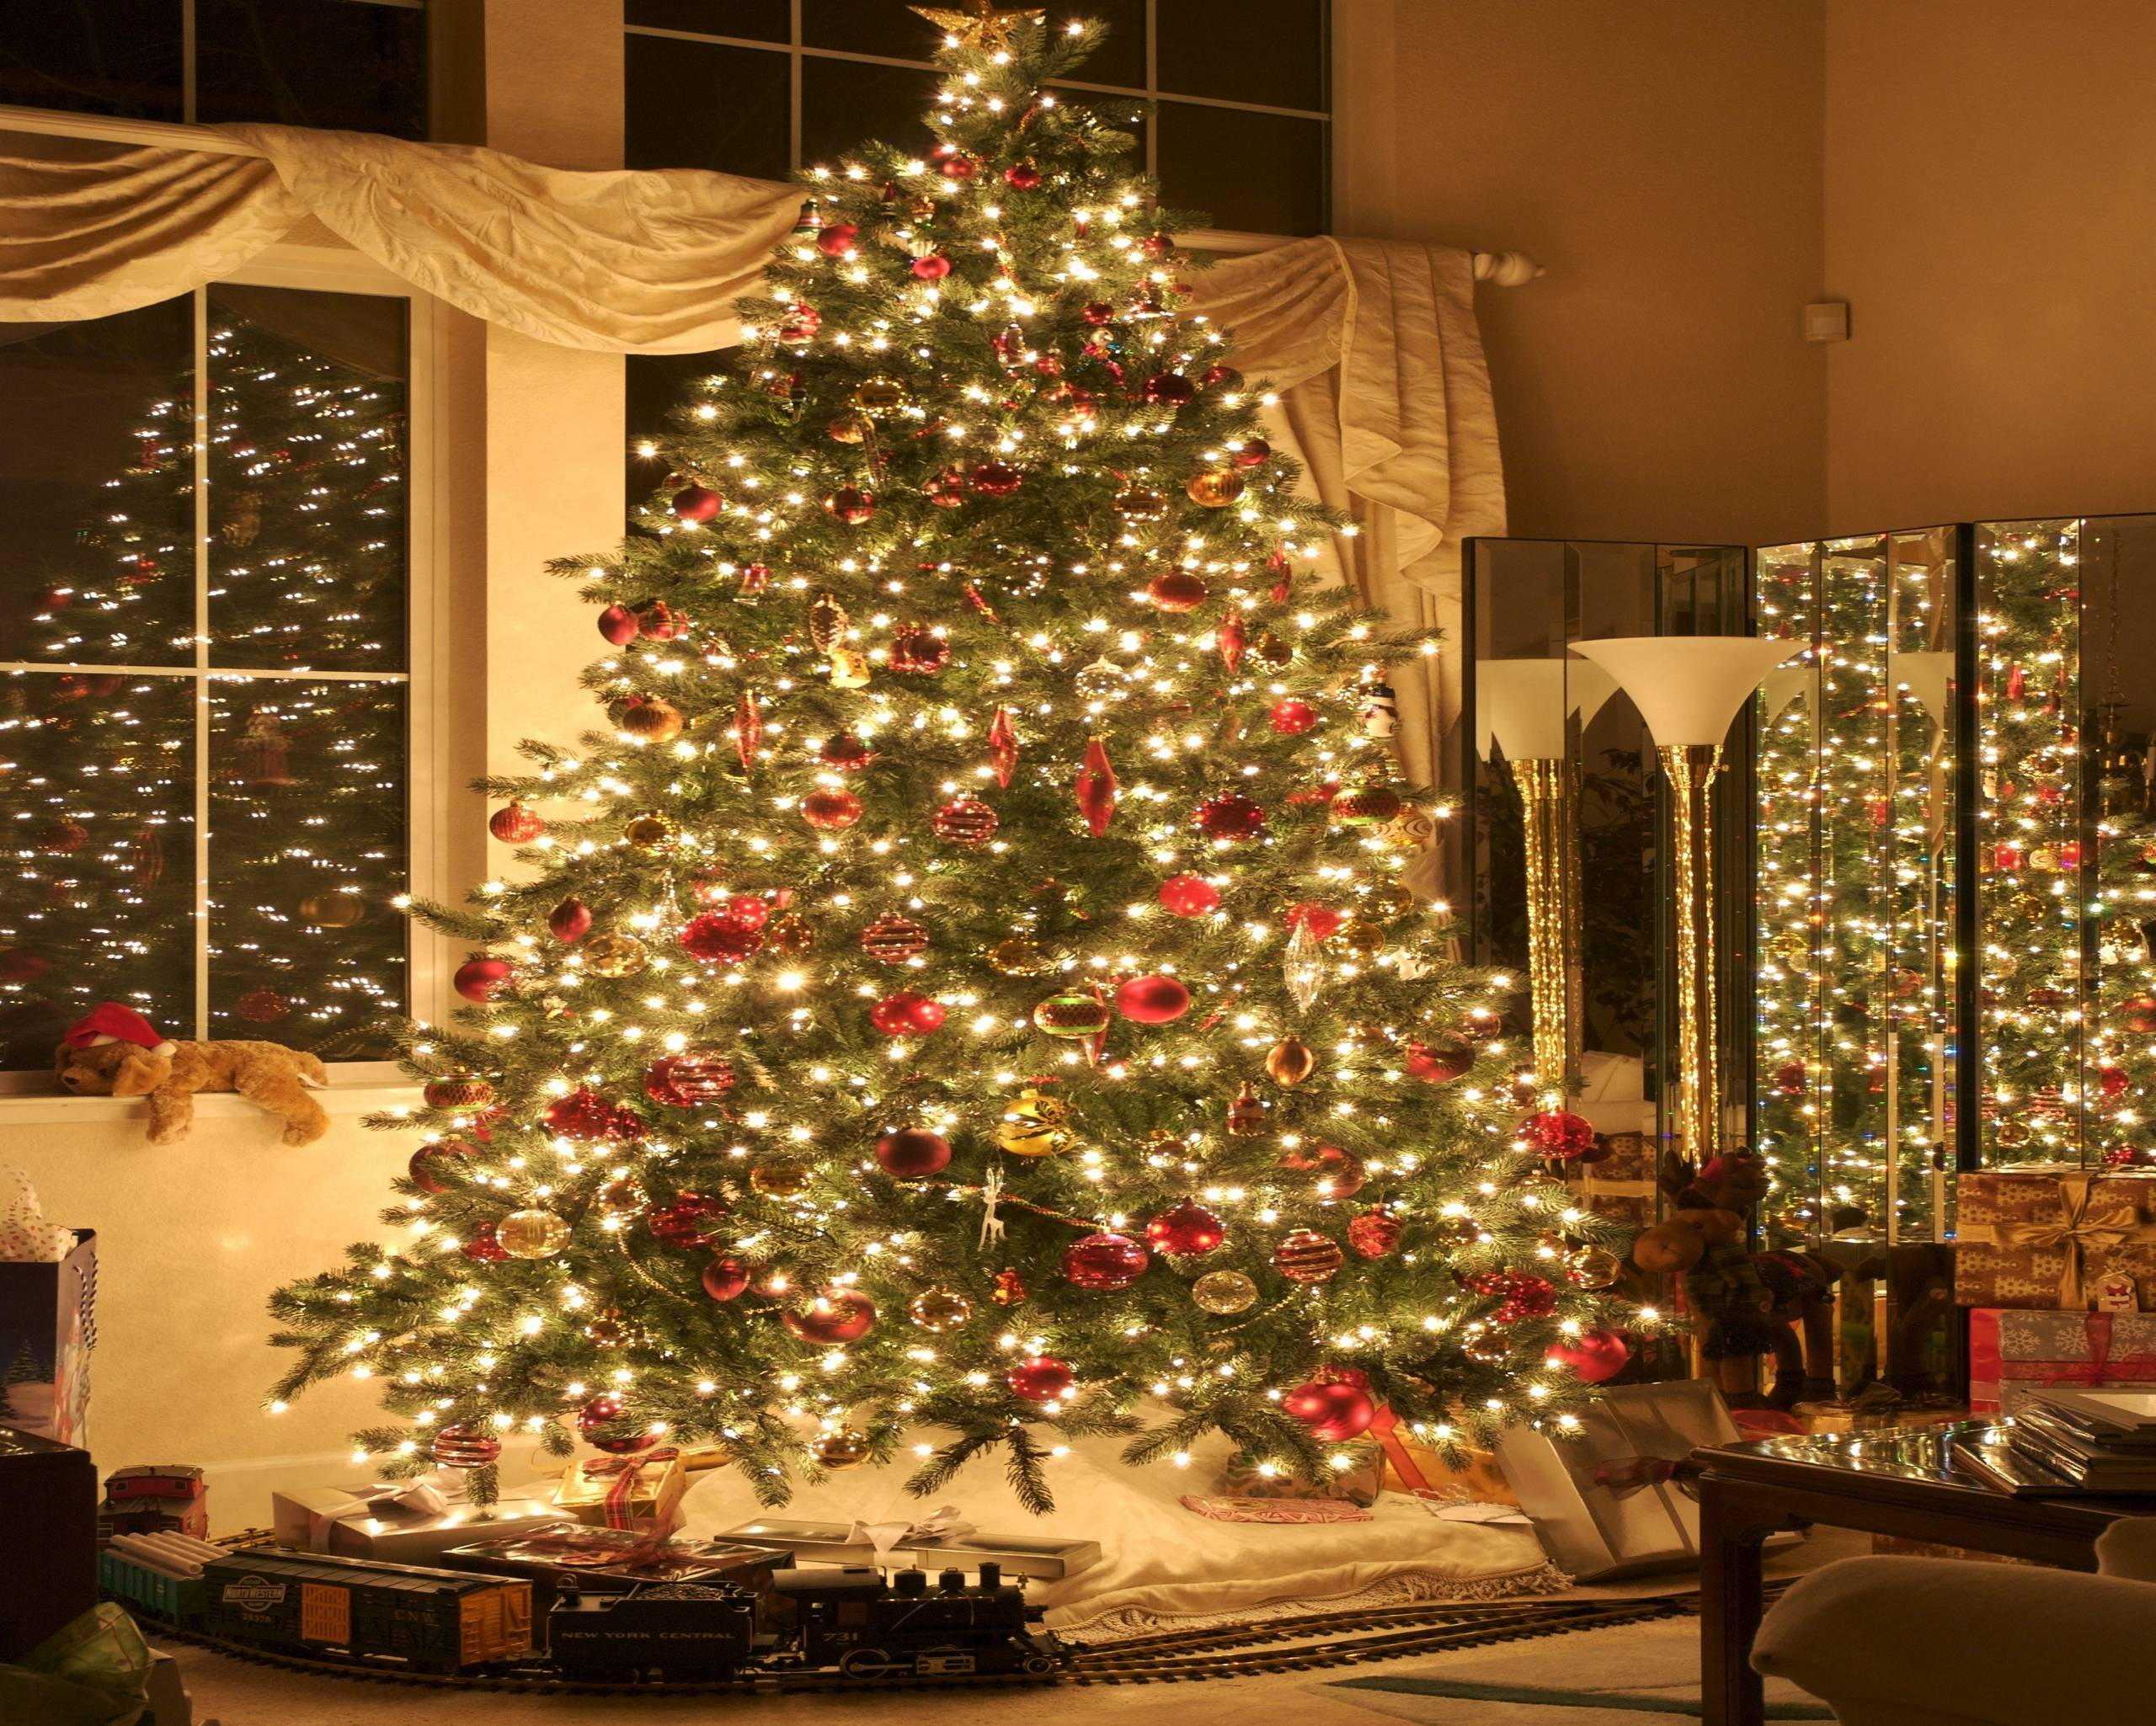 Christmas Tree With Presents Wallpapers 2014 HD